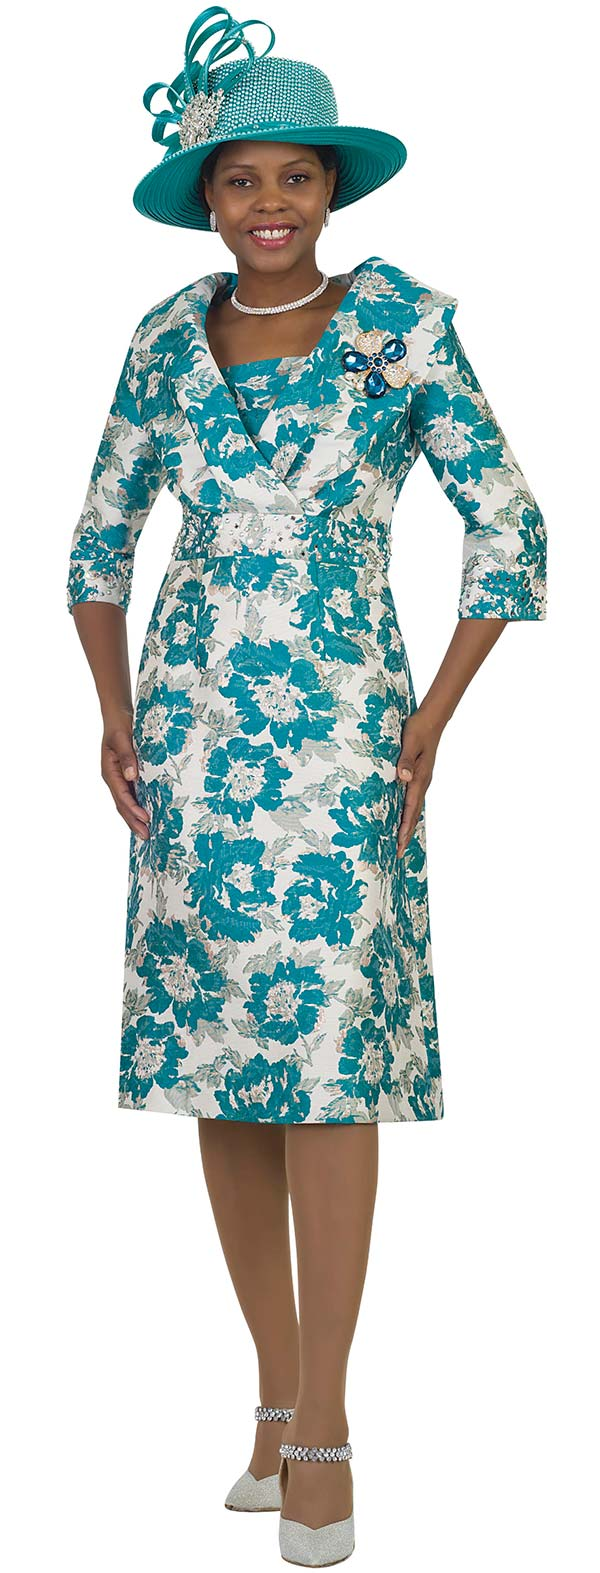 Lily and Taylor 4550-Teal - Floral Print Rhinestone Embellished Church Dress With Over Shoulder Collar Design